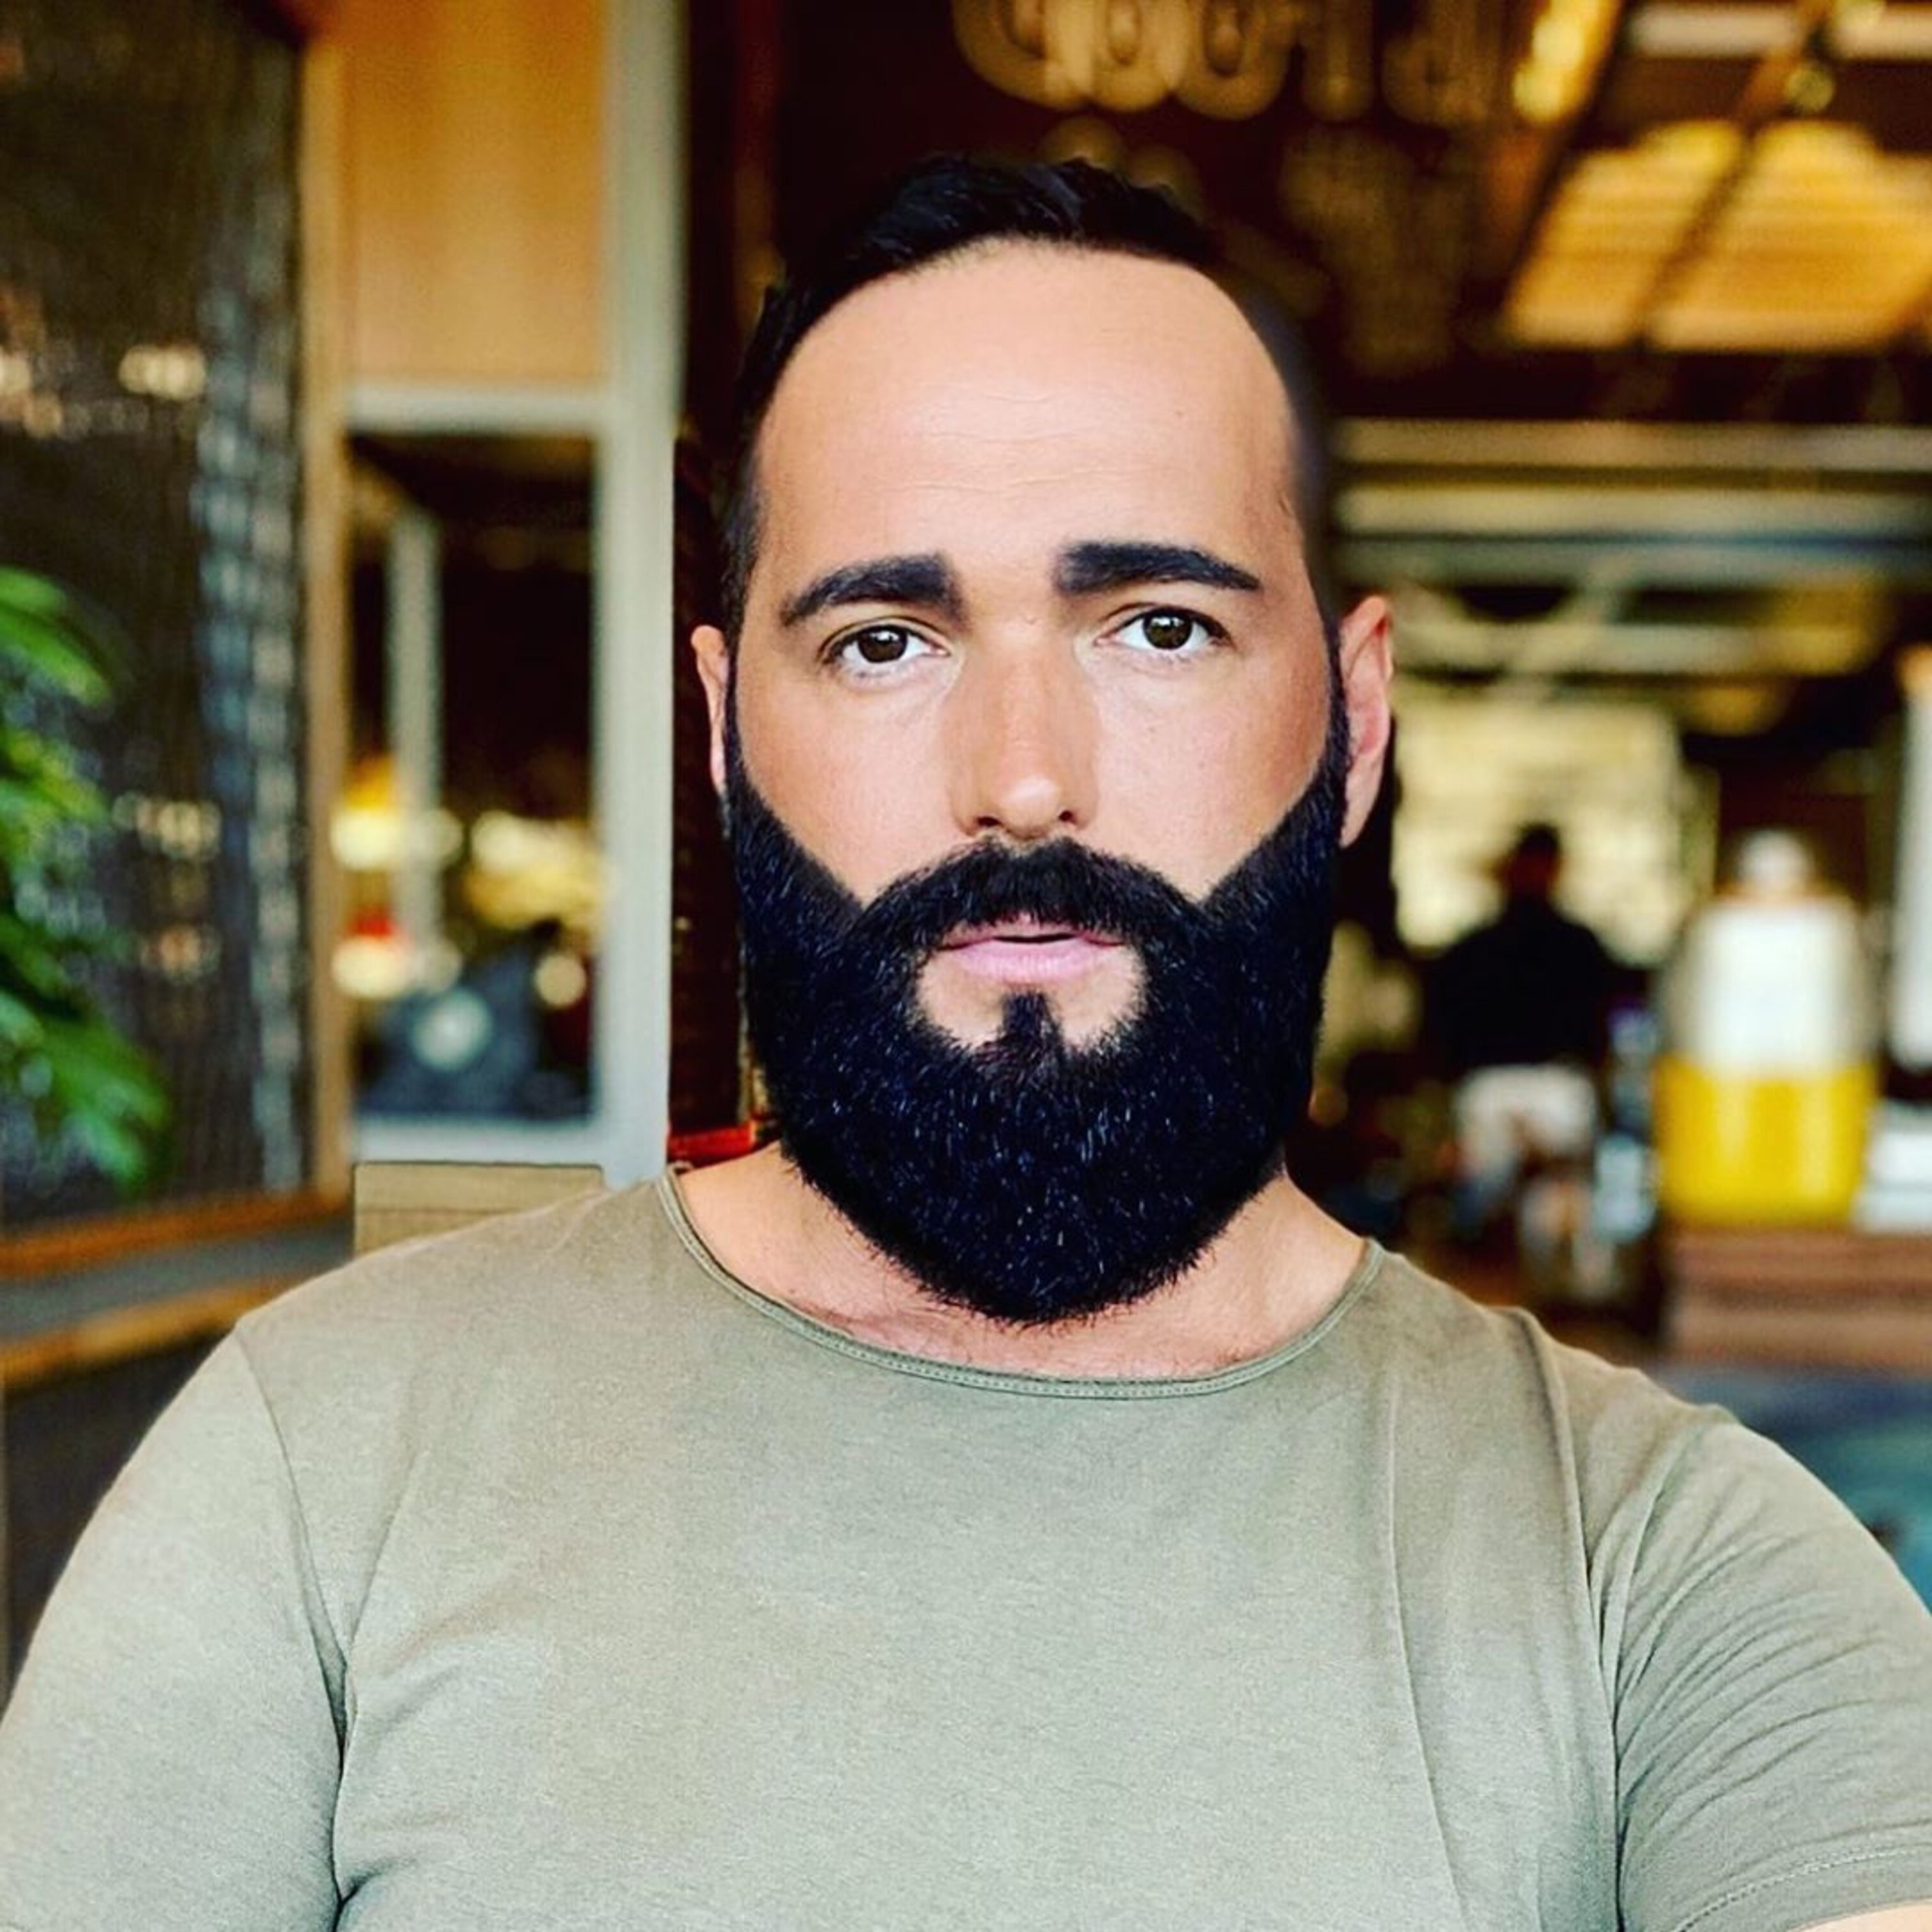 A low haircut with a full beard style.